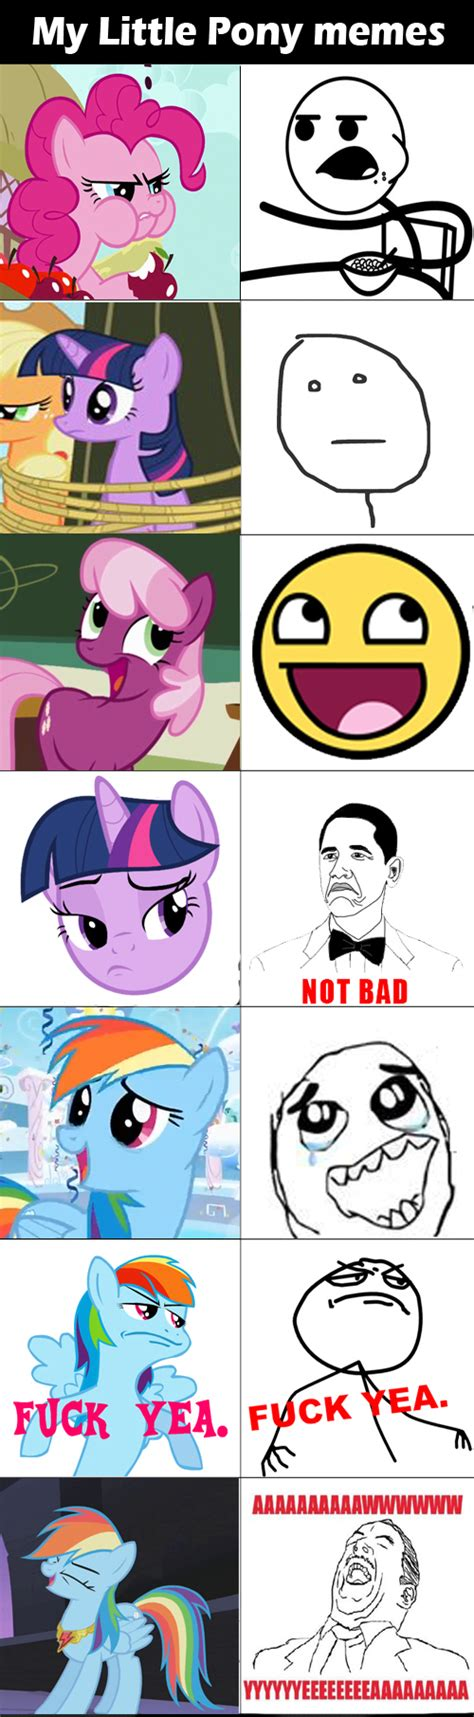 Memes My Little Pony - deviantart appreciation station